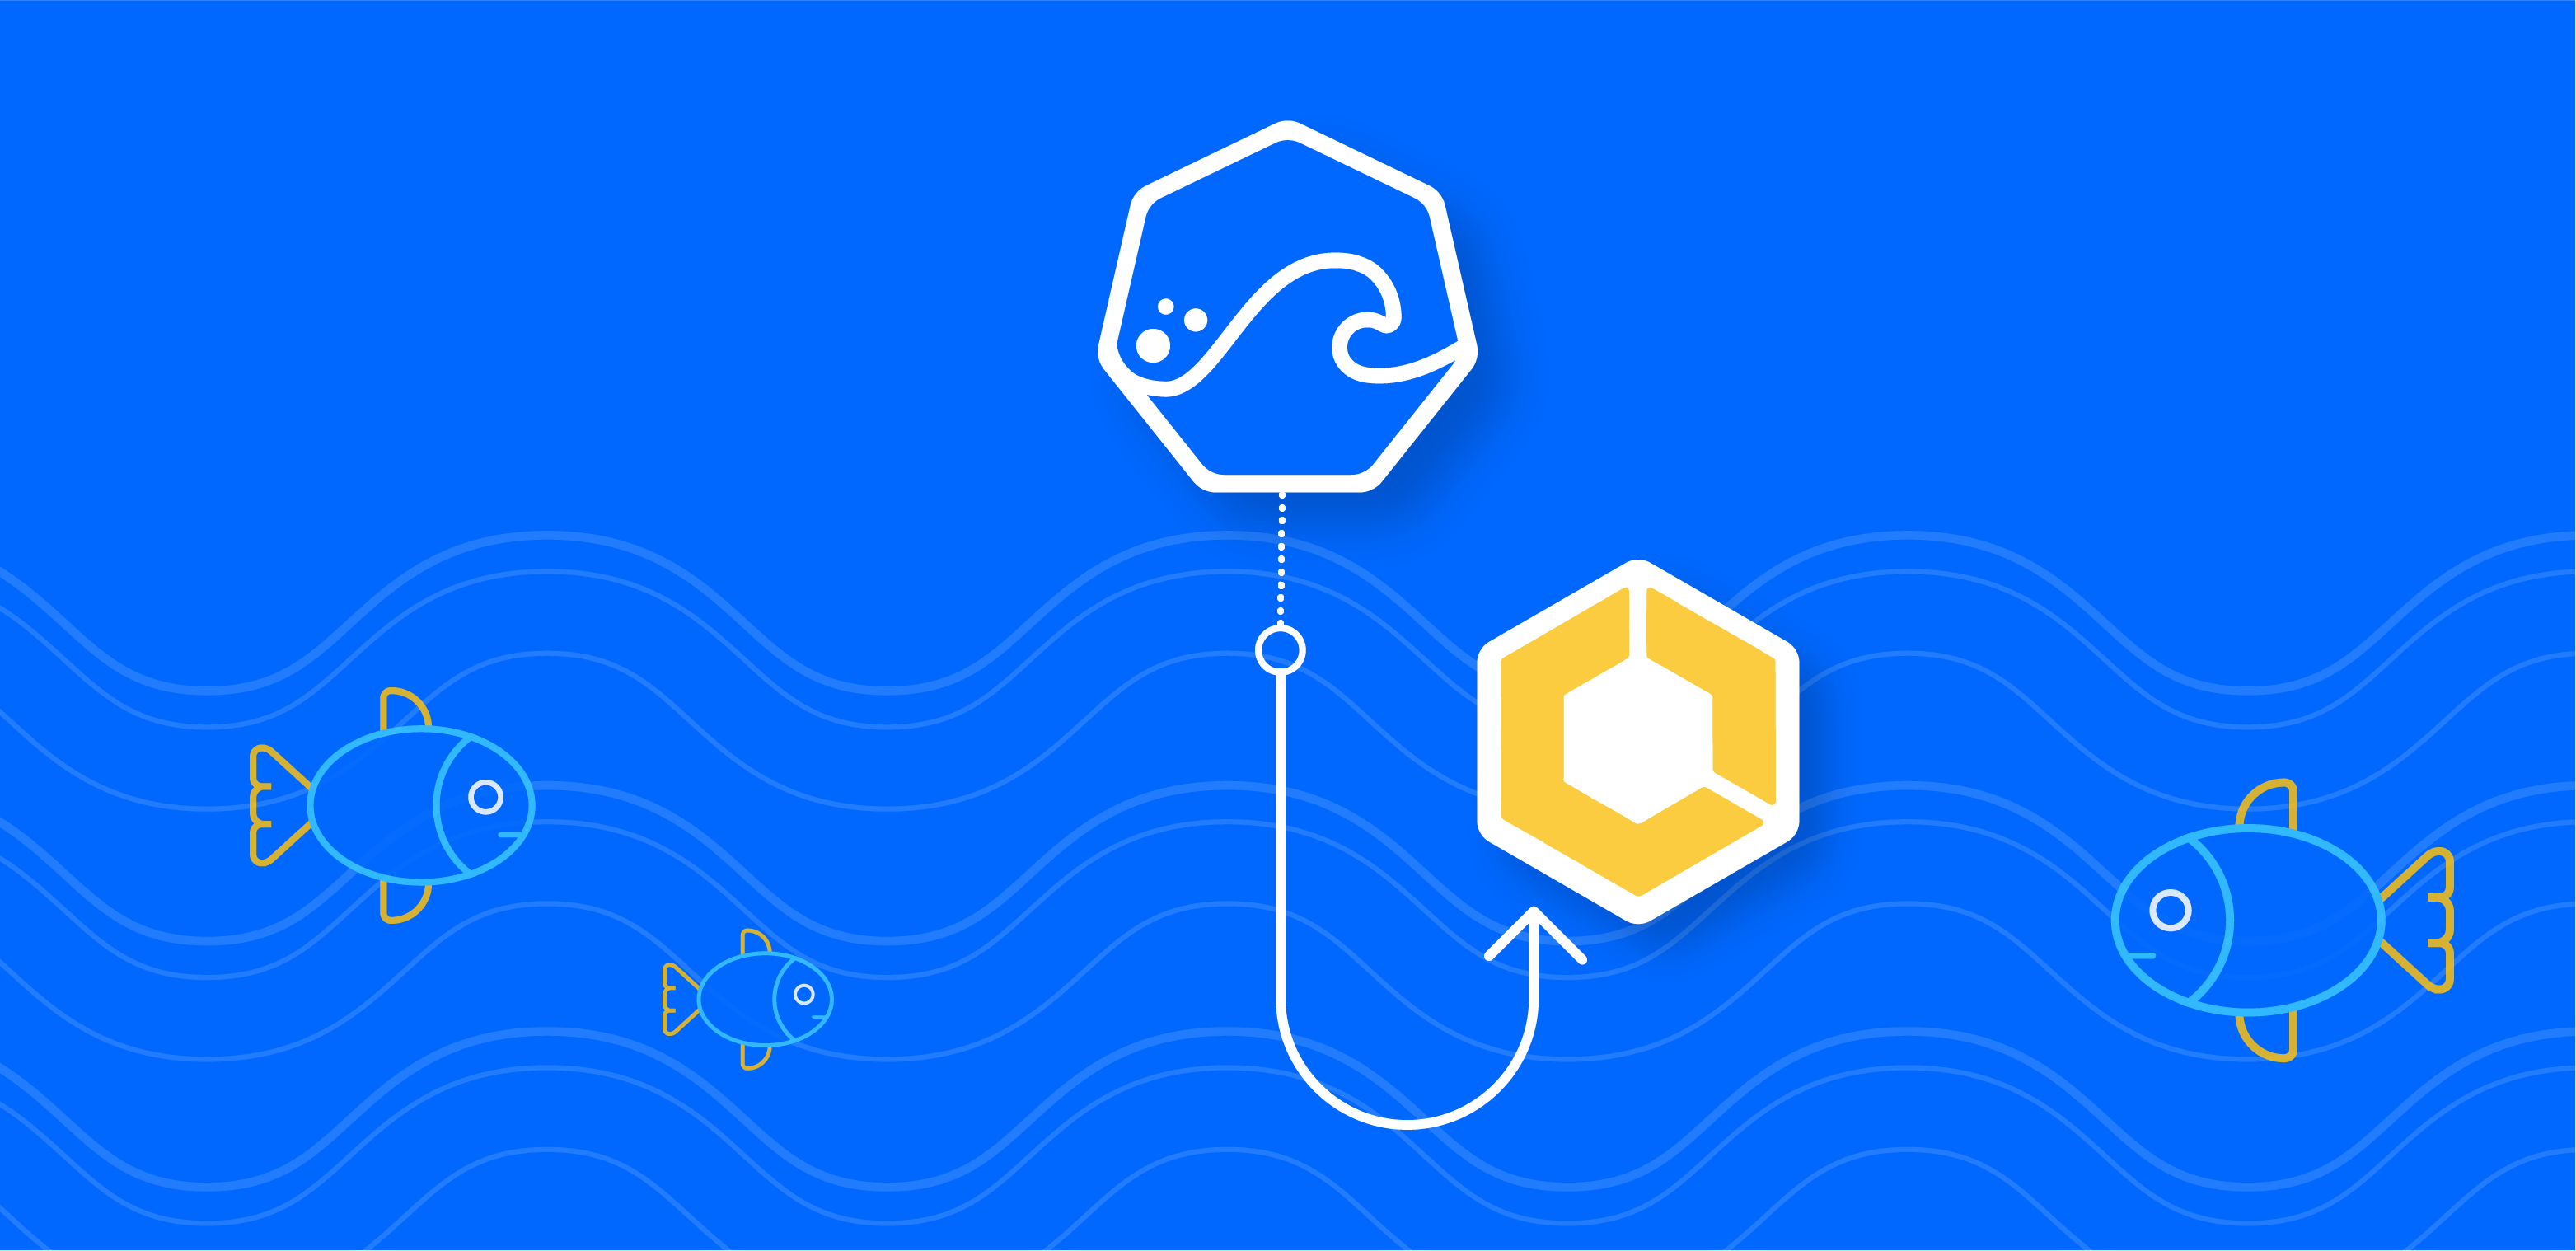 Amazon ECS workloads are now supported in Spotinst Ocean